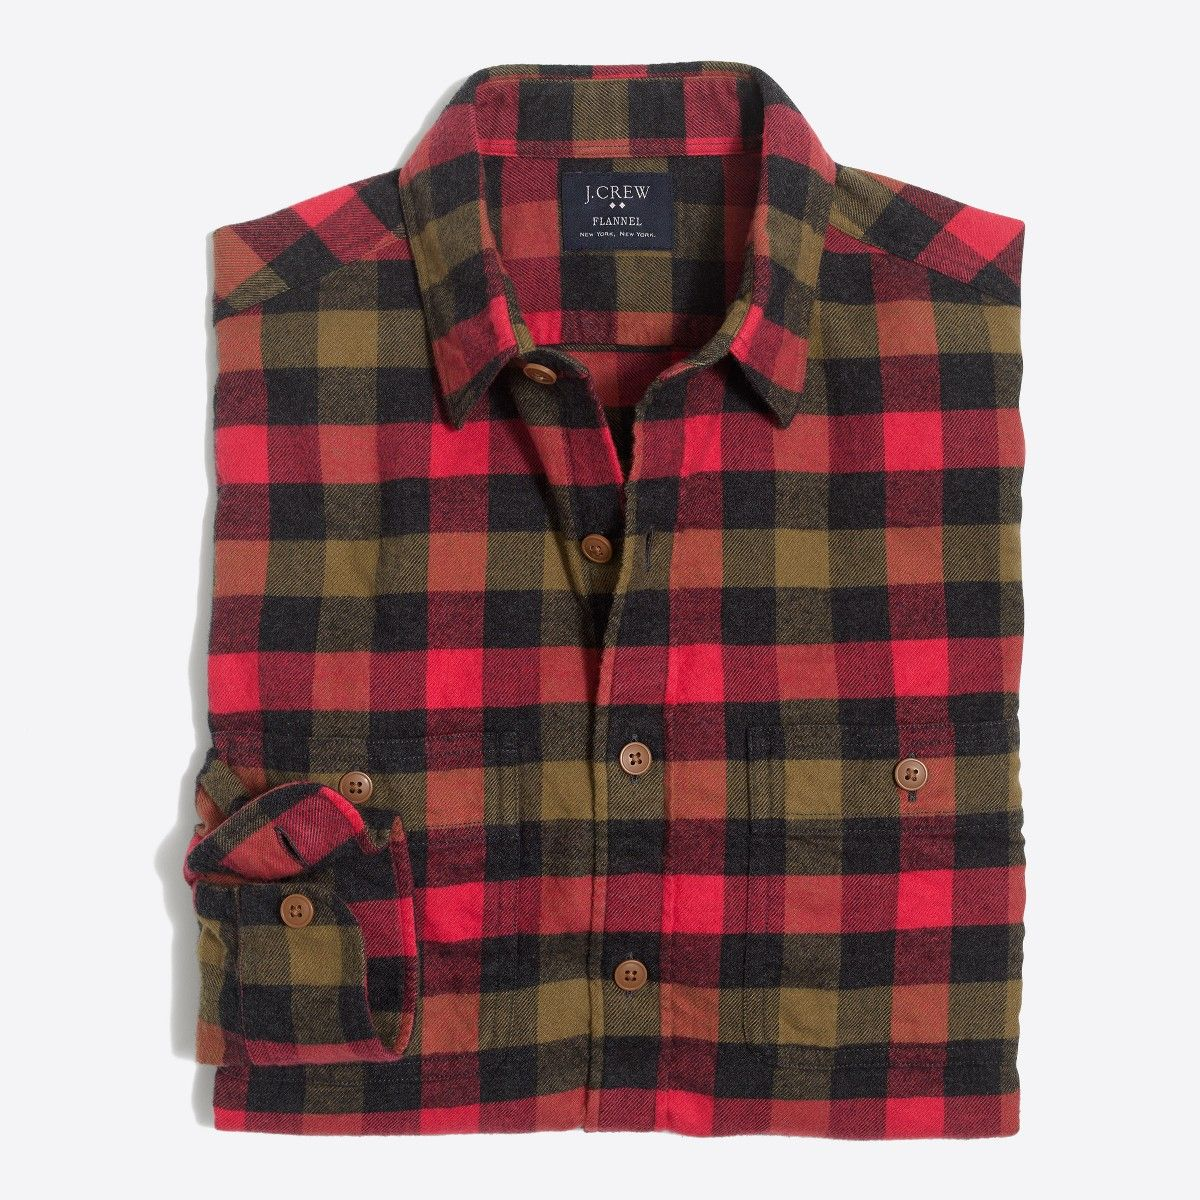 Flannel shirt with shorts men  Shop the Slim Plaid Flannel Shirt at JCrew Factory and find